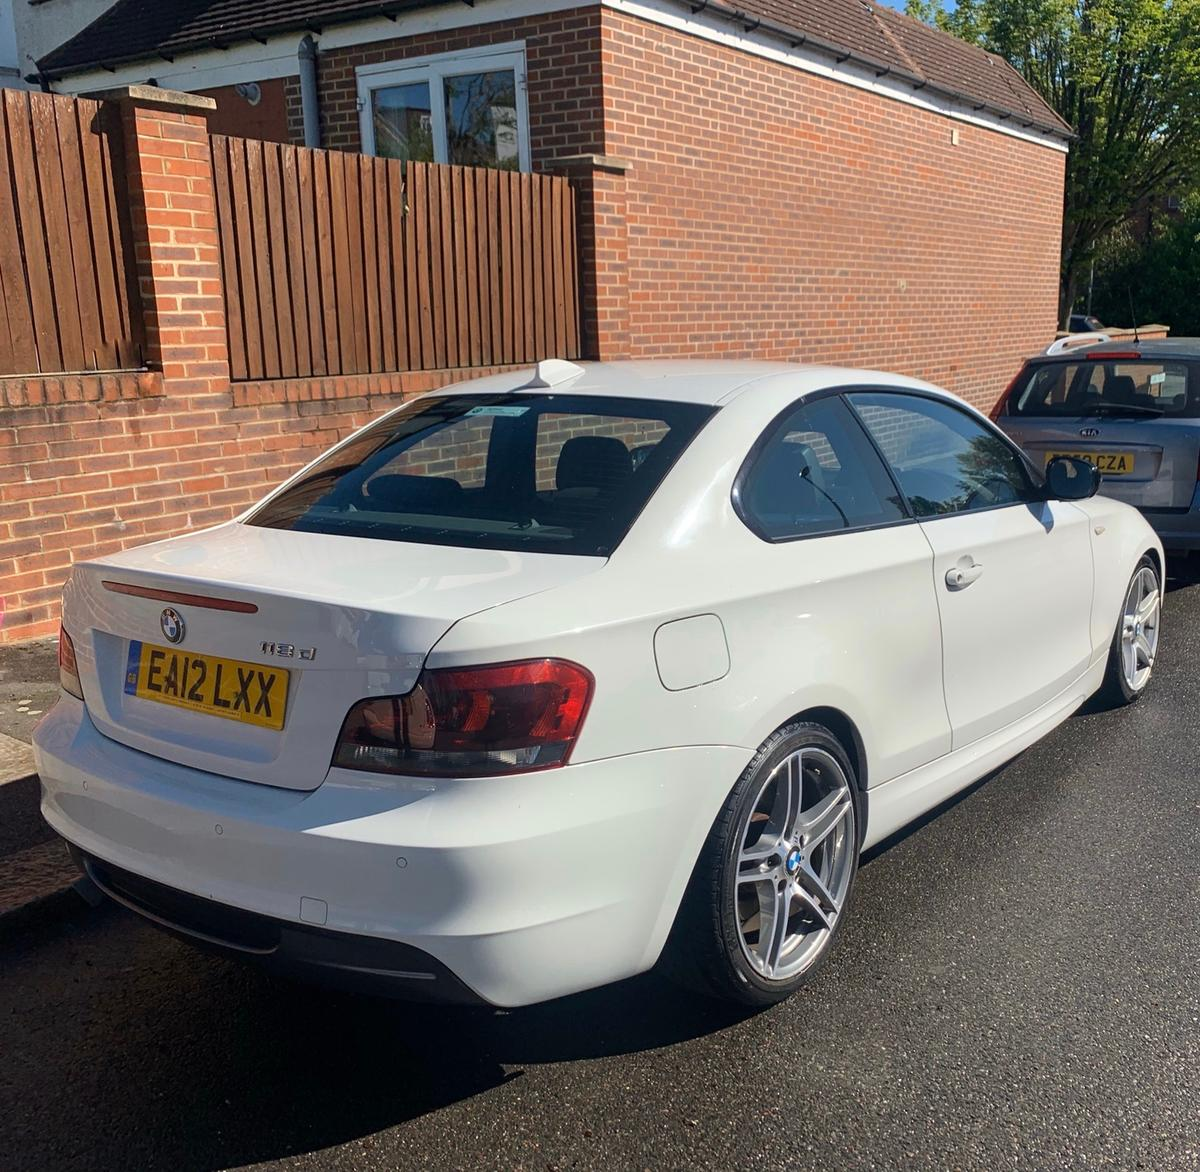 Sat Nav  Heated seats  Full leather seats  Alloys  Sports edition  Electric windows  Parking sensors  Bluetooth  Air conditioning  Diesel  Full service history  Taxed August 2020  MOT September 2020  Two previous female owners  Mileage 71427